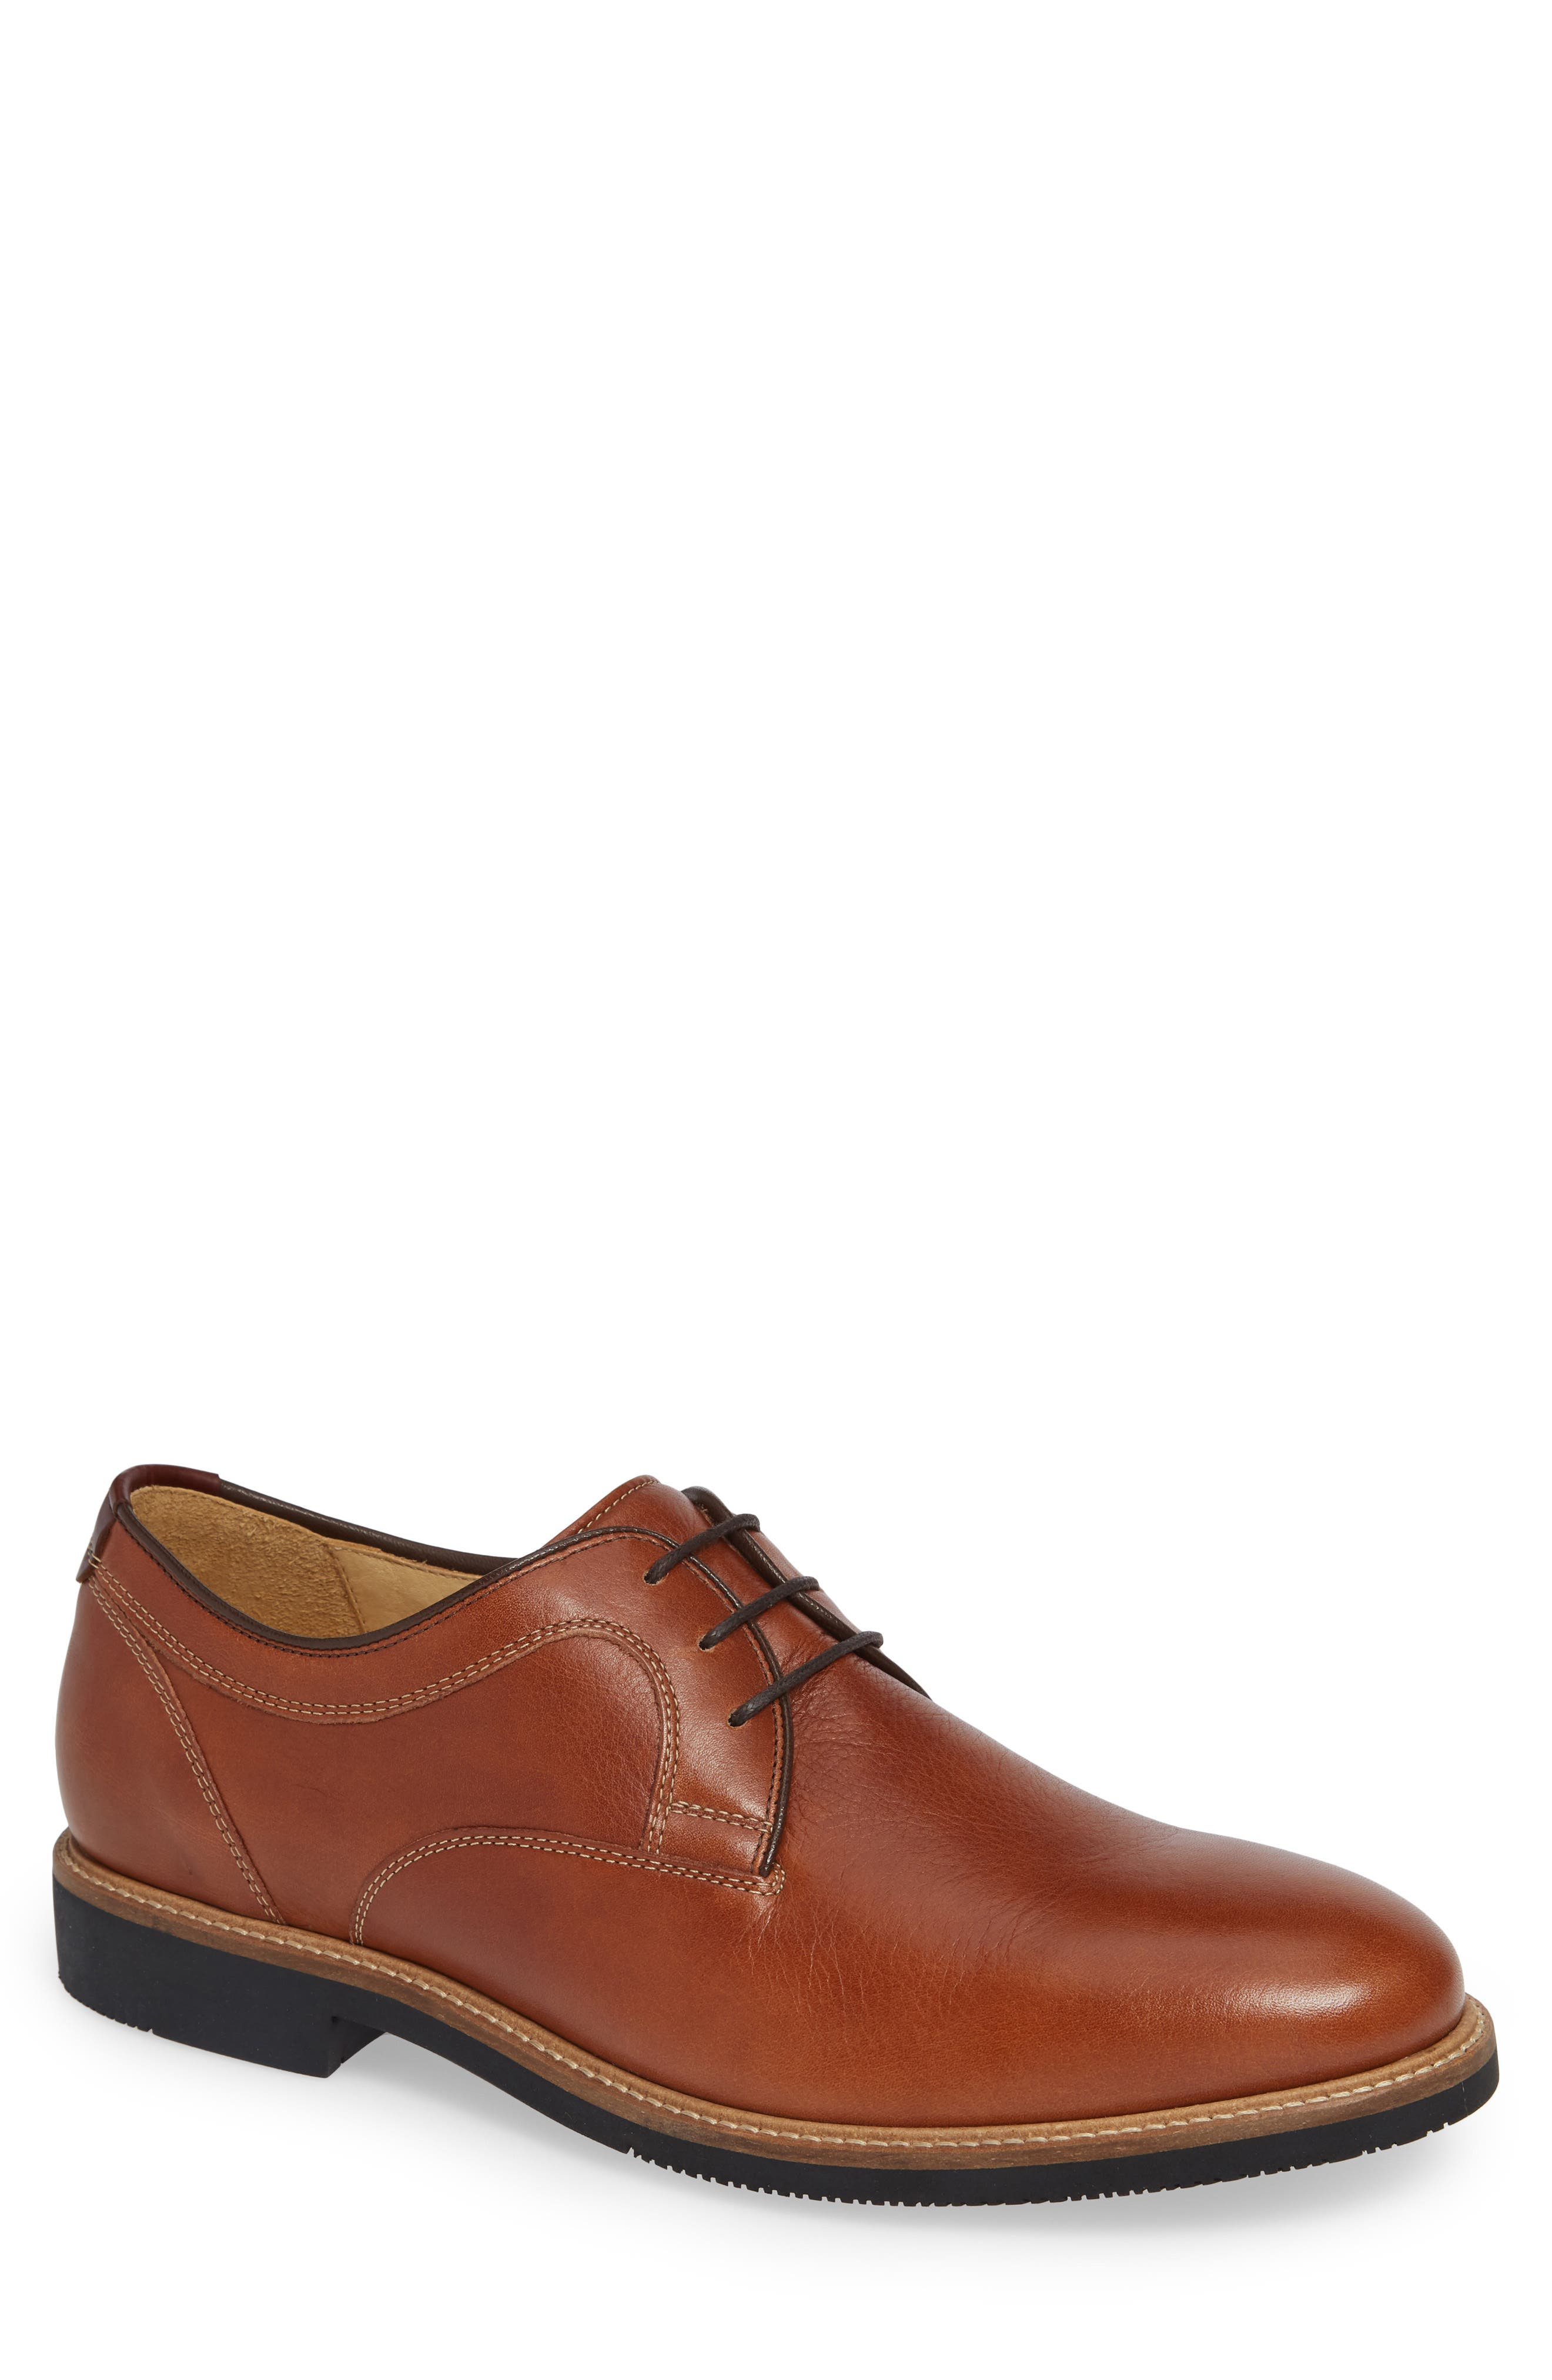 Barlow Plain Toe Derby,                             Main thumbnail 1, color,                             DARK TAN LEATHER